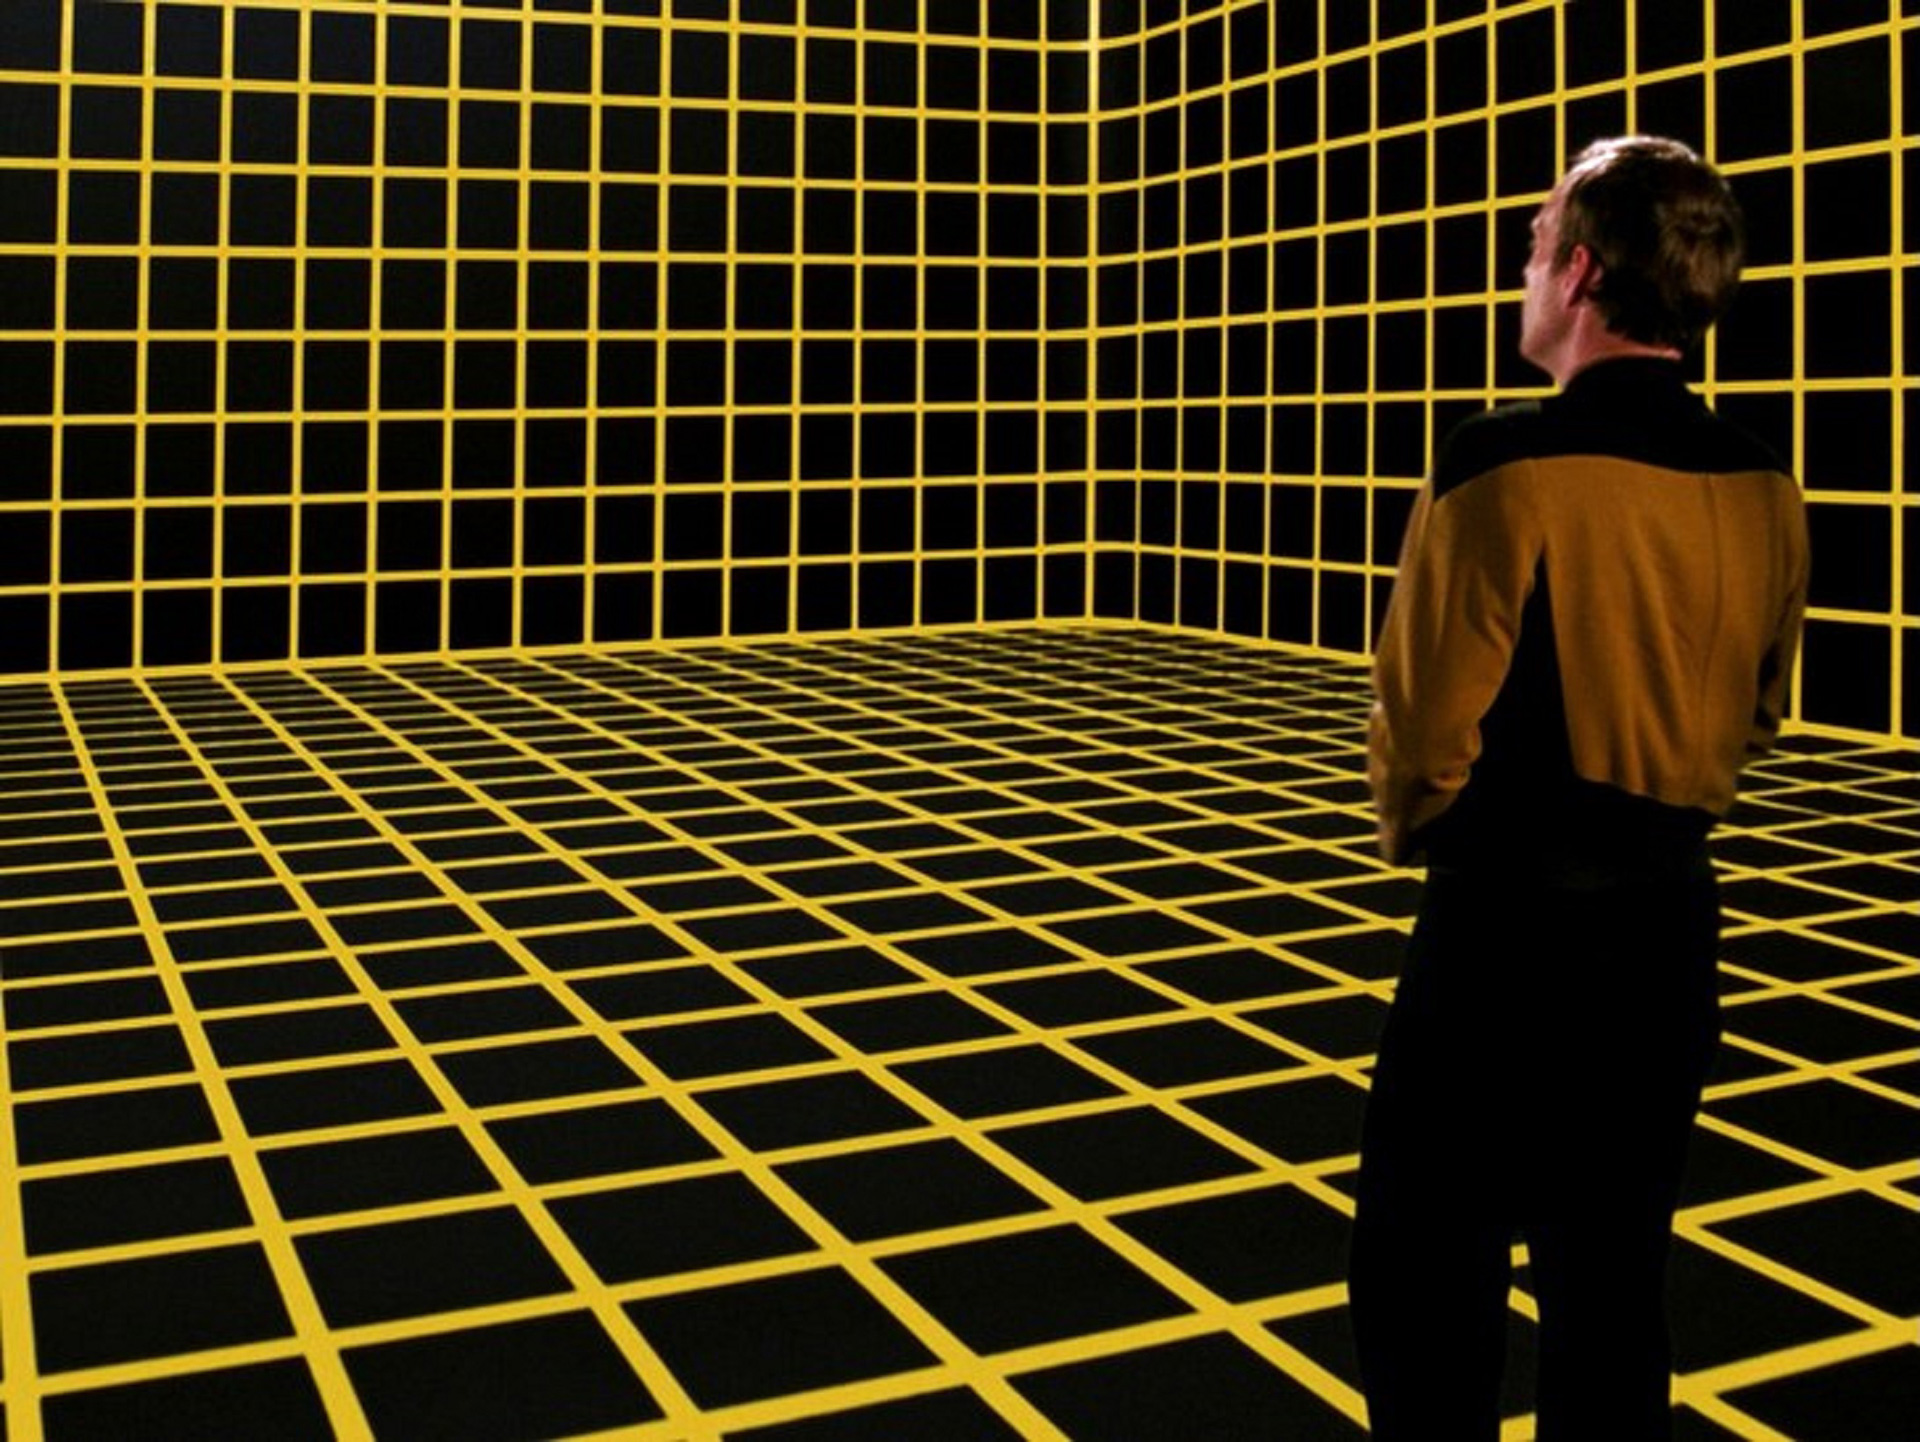 Star Trek: The first Holodeck created in 1974 | Art movements | STIRworld